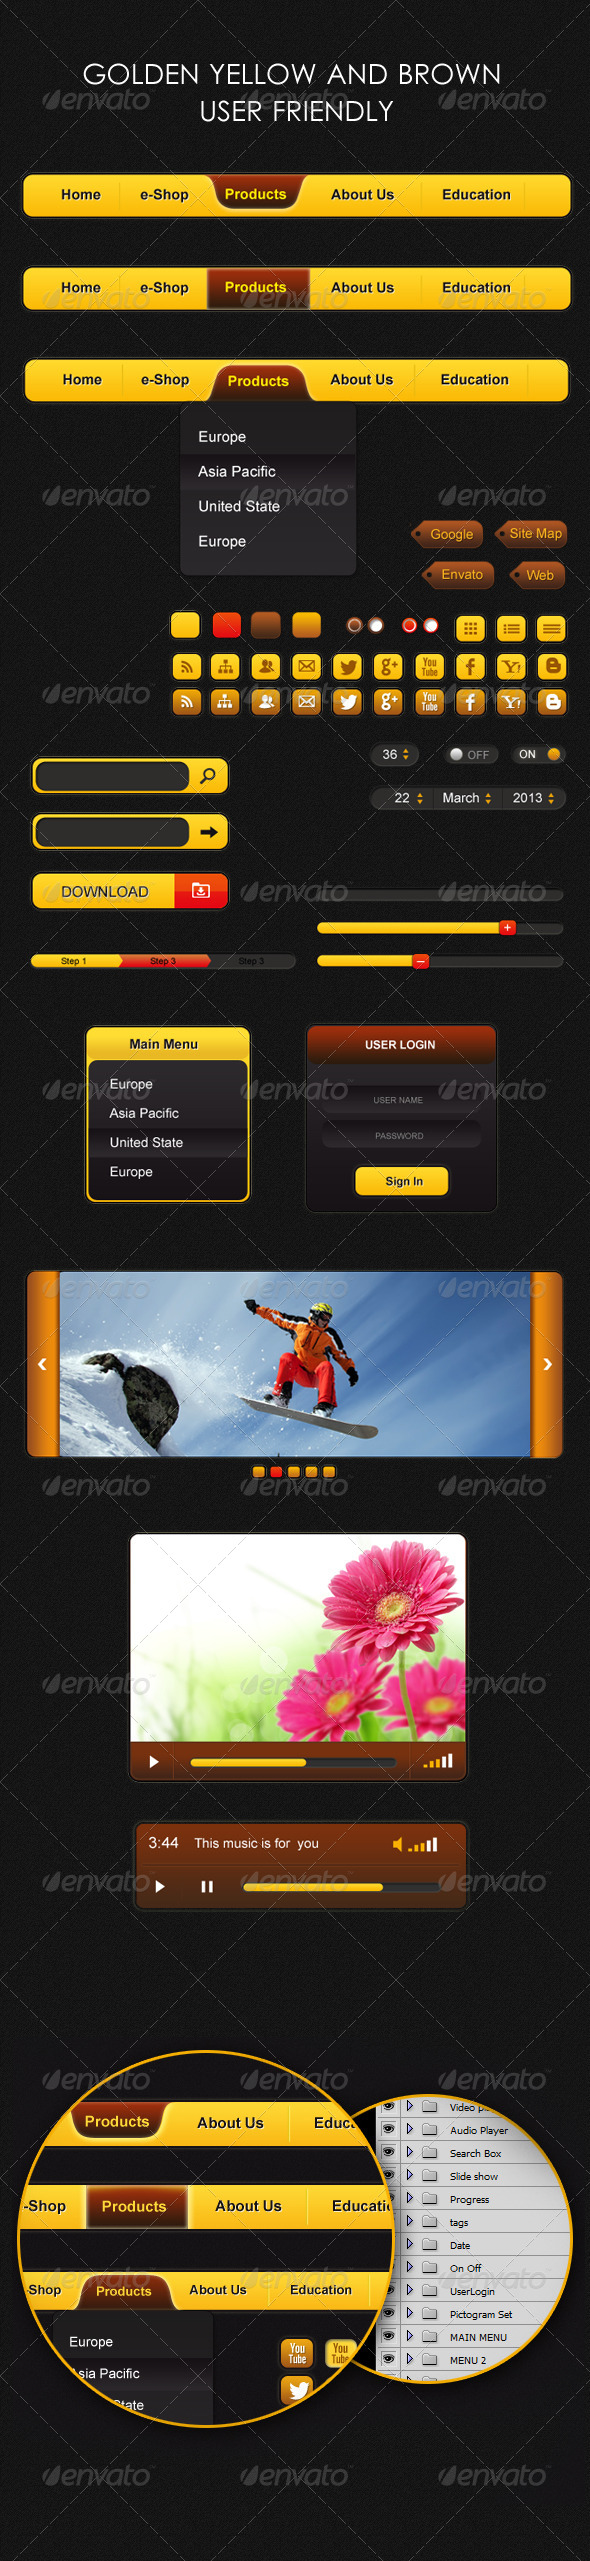 GraphicRiver Golden Yellow and Brown User Friendly 4362154